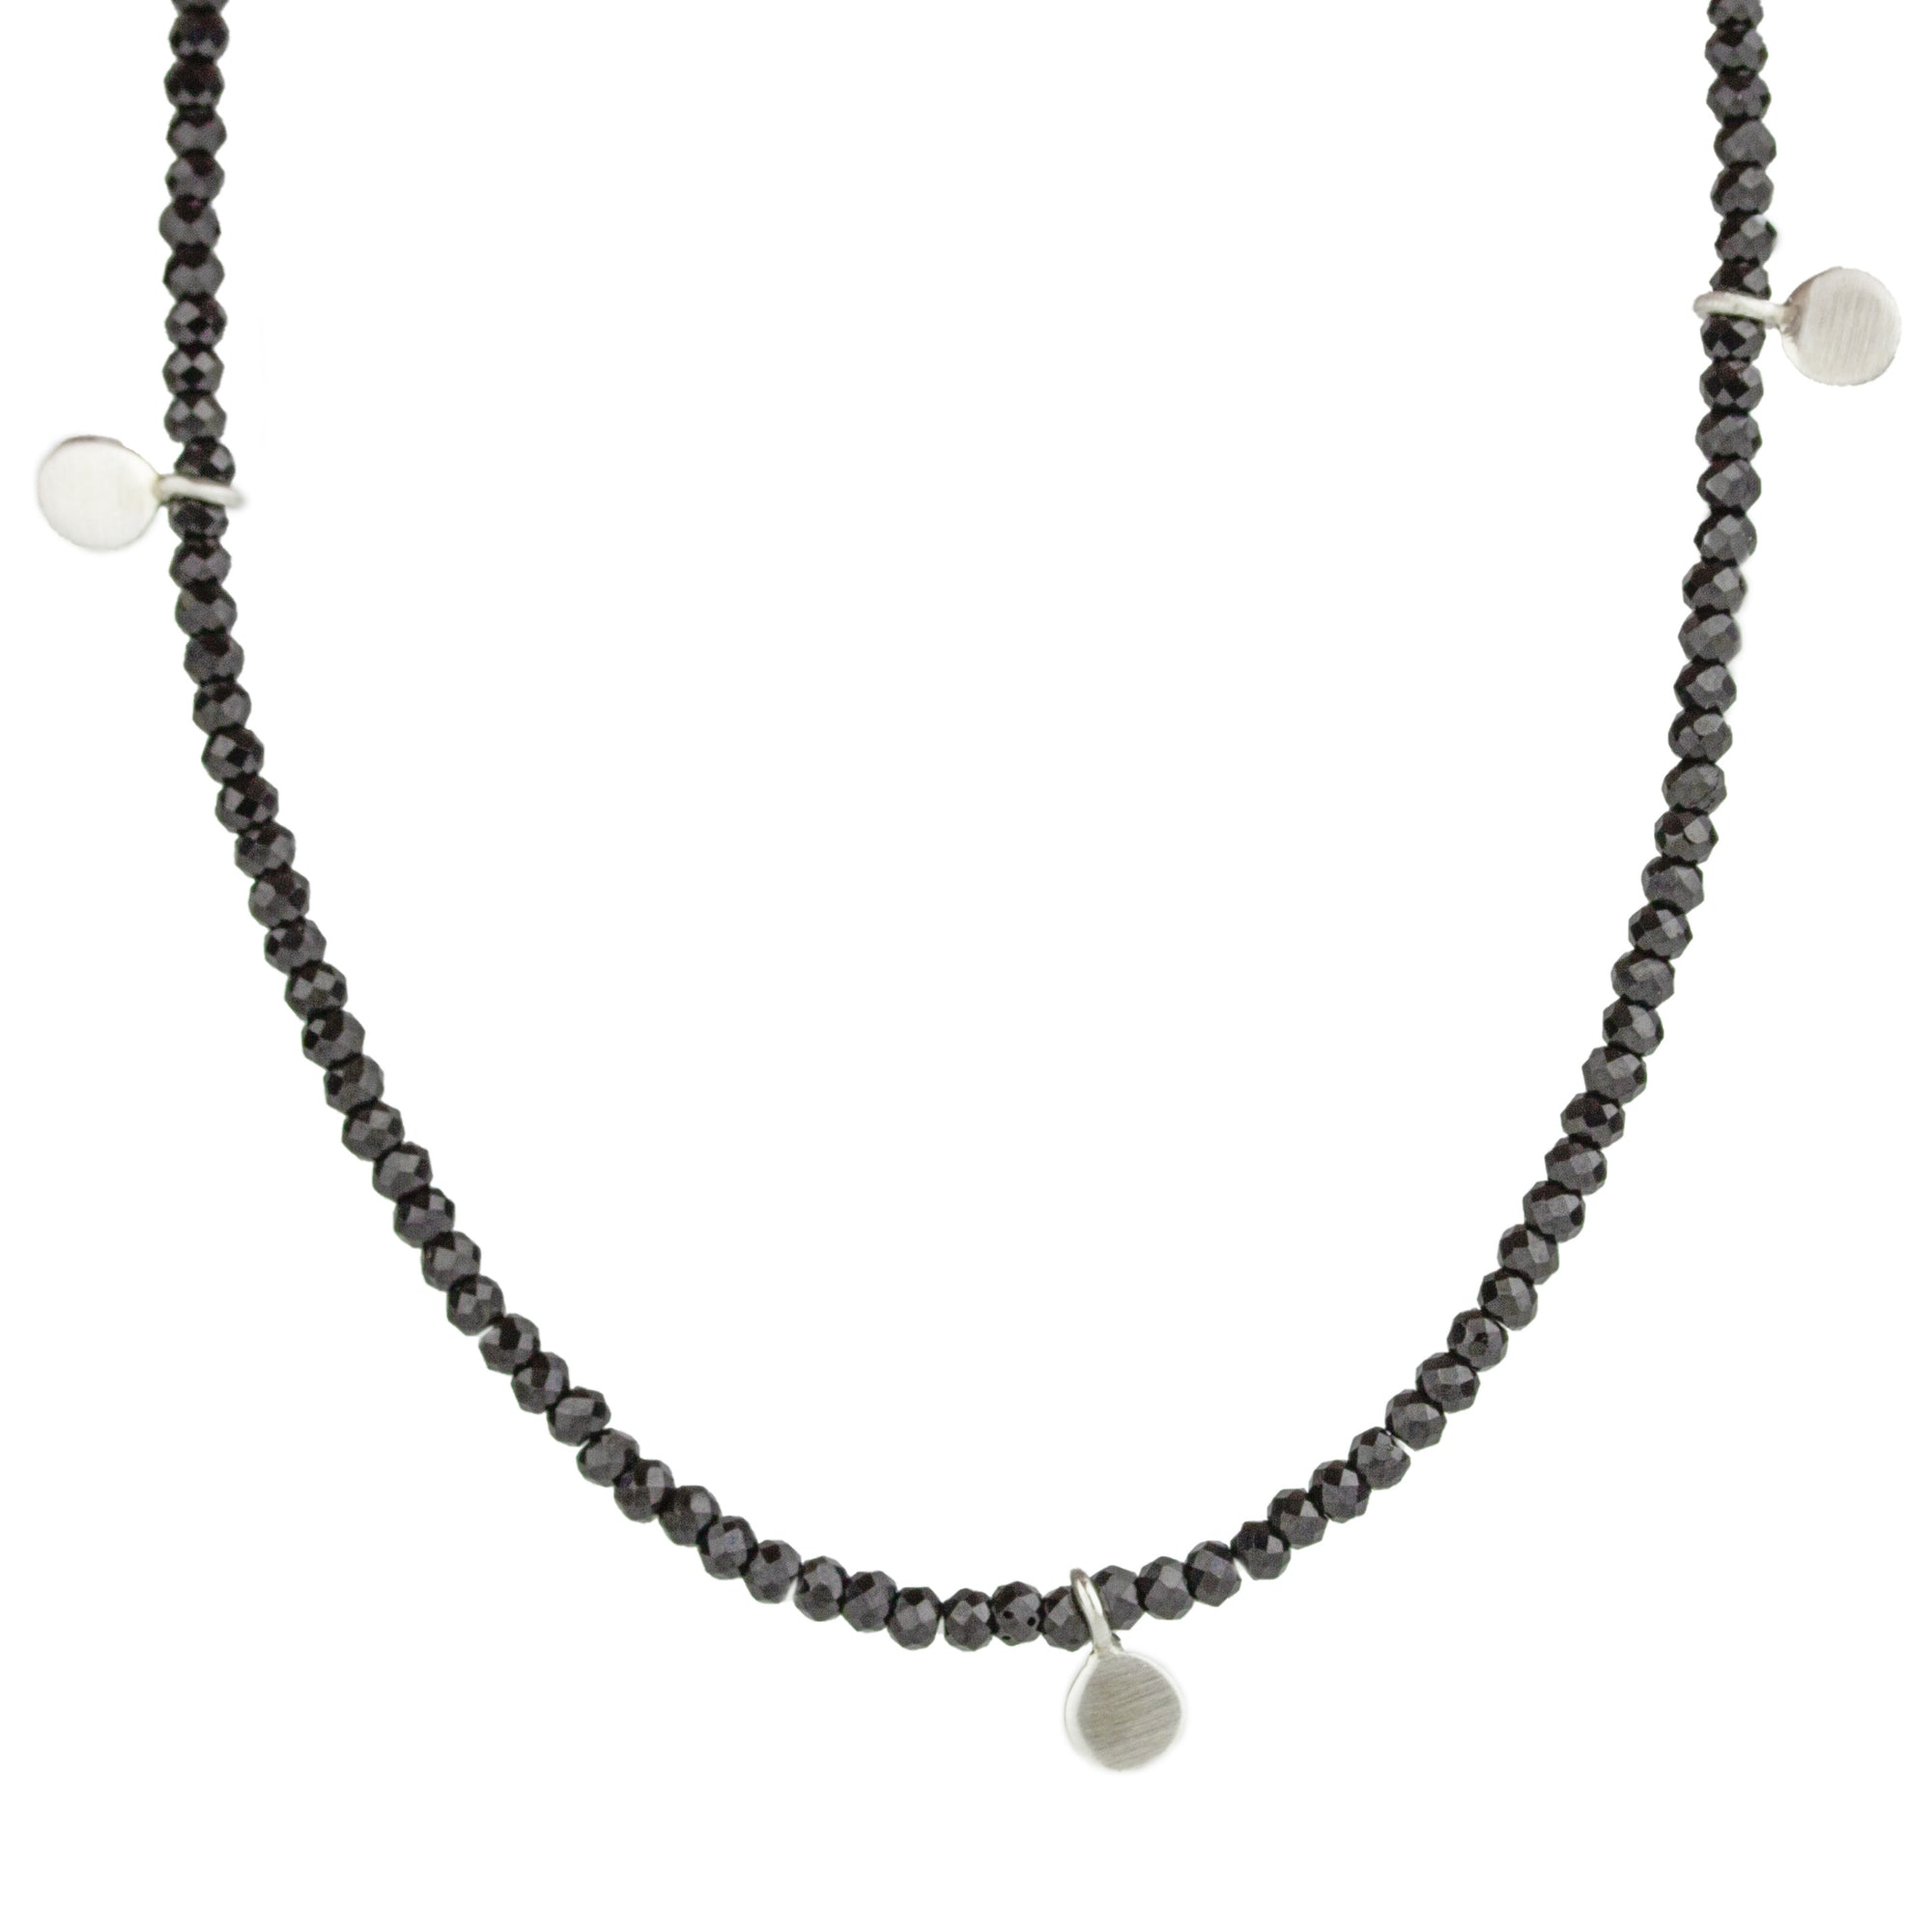 Black Spinel + Paillette Necklace